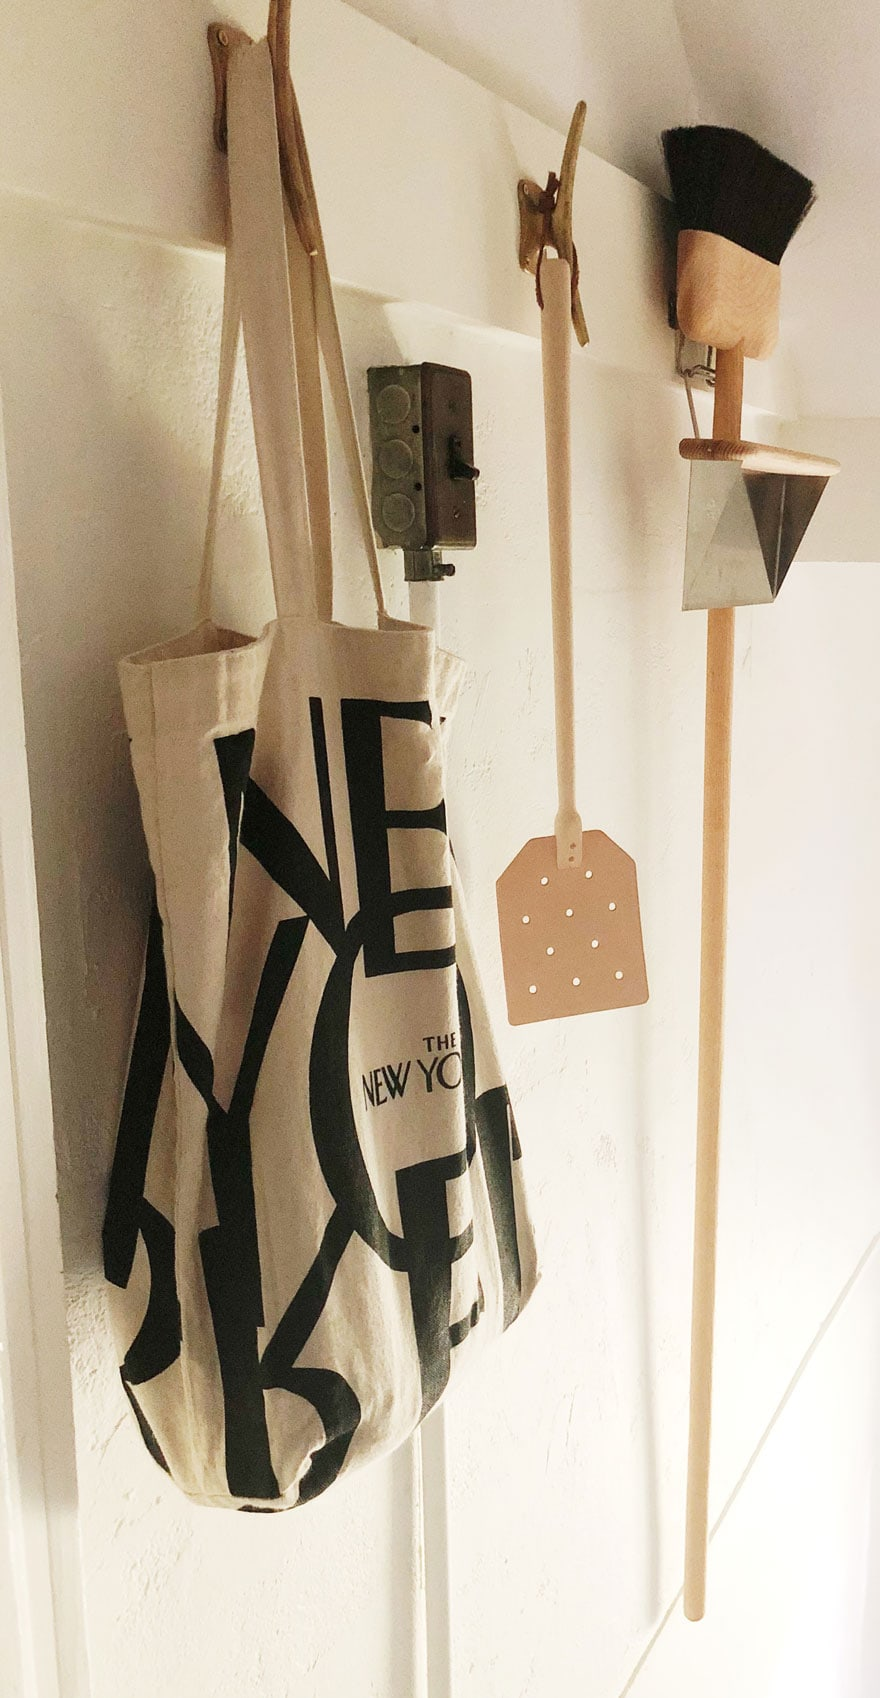 tote bag, broom, flyswatter on hooks